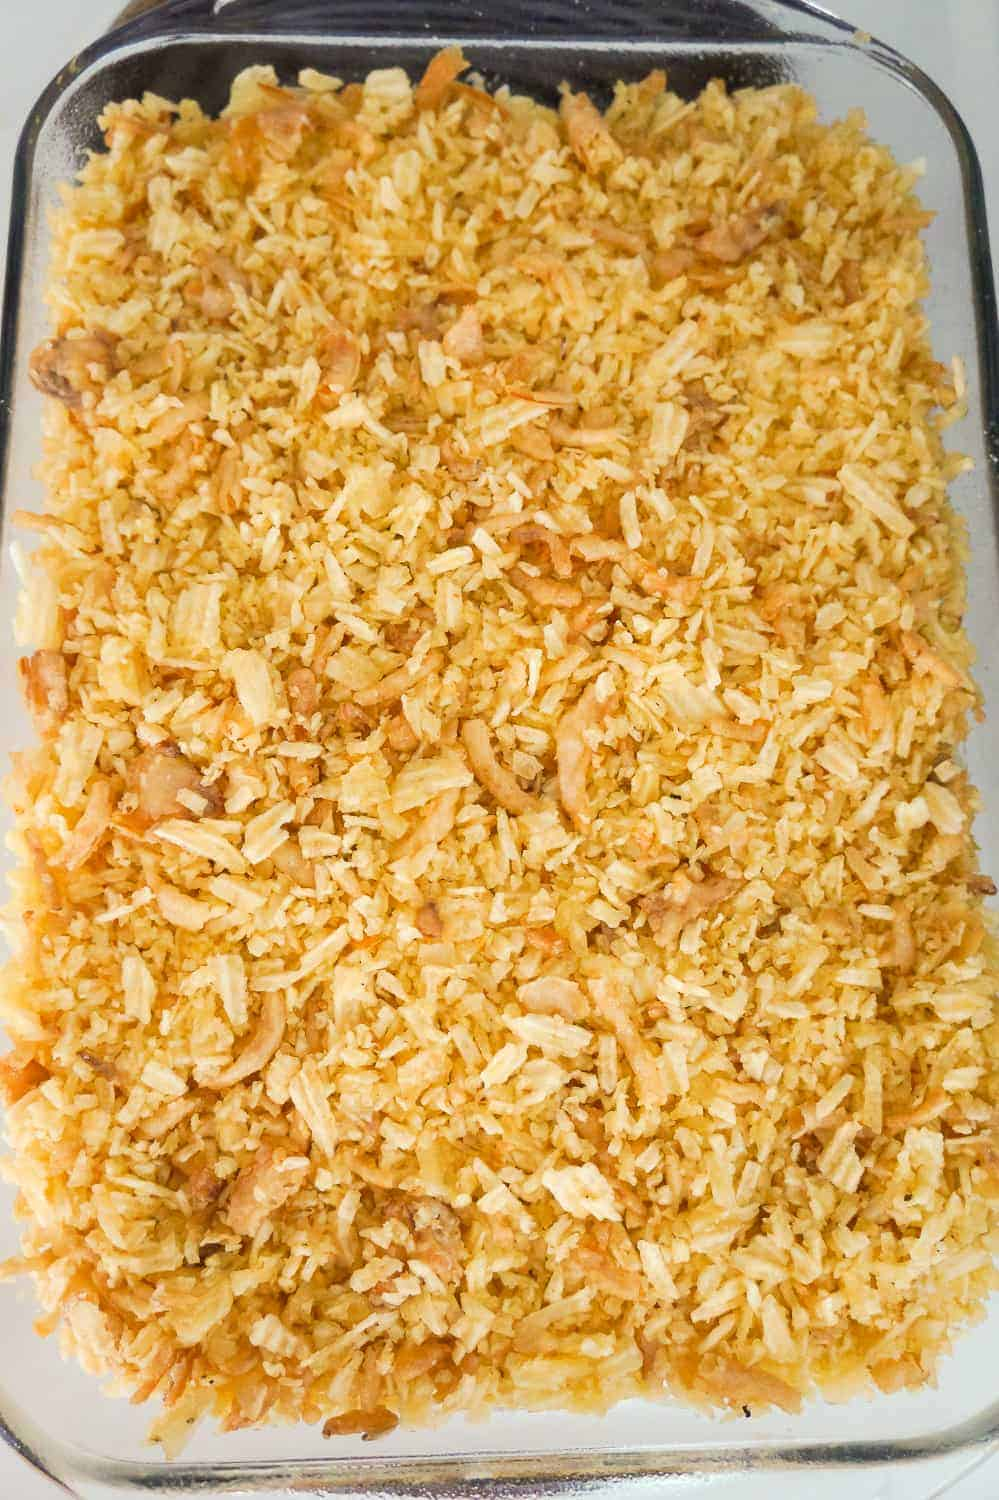 crushed potato chips and French's fried onions on top of mac and cheese